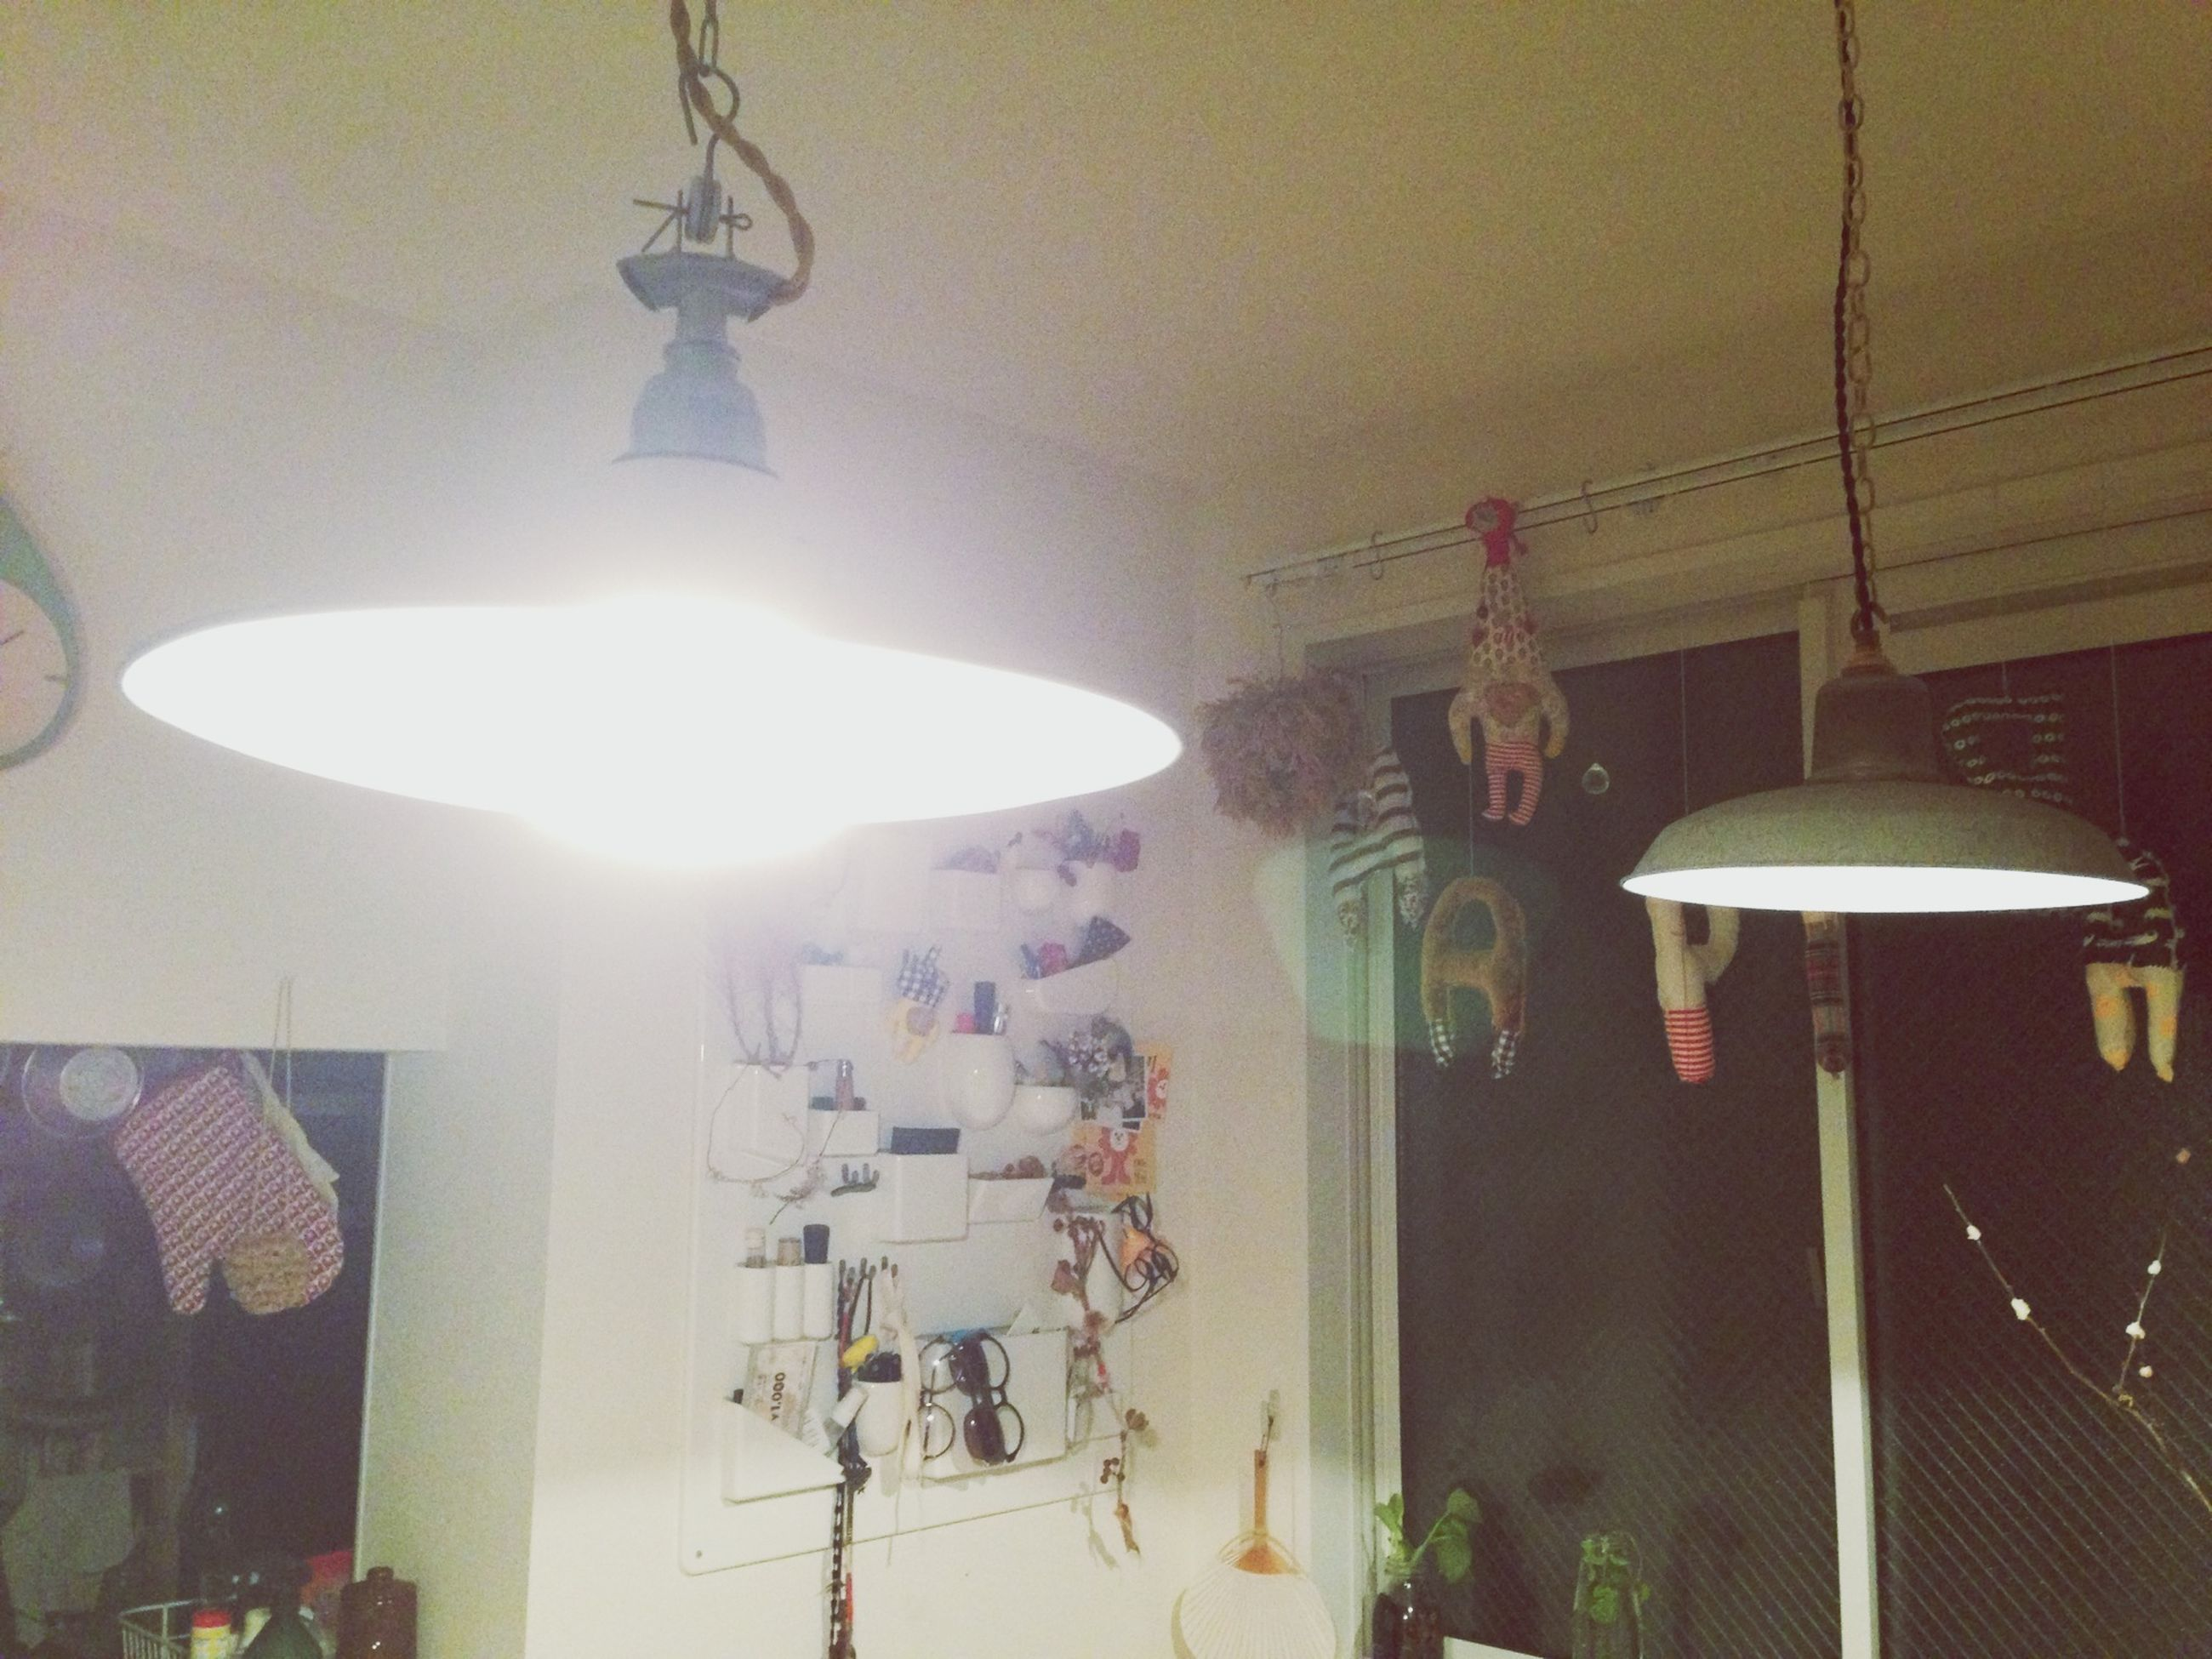 indoors, lighting equipment, illuminated, hanging, electric lamp, ceiling, electricity, electric light, lamp, chandelier, decoration, built structure, lantern, home interior, light - natural phenomenon, architecture, religion, light bulb, low angle view, lit